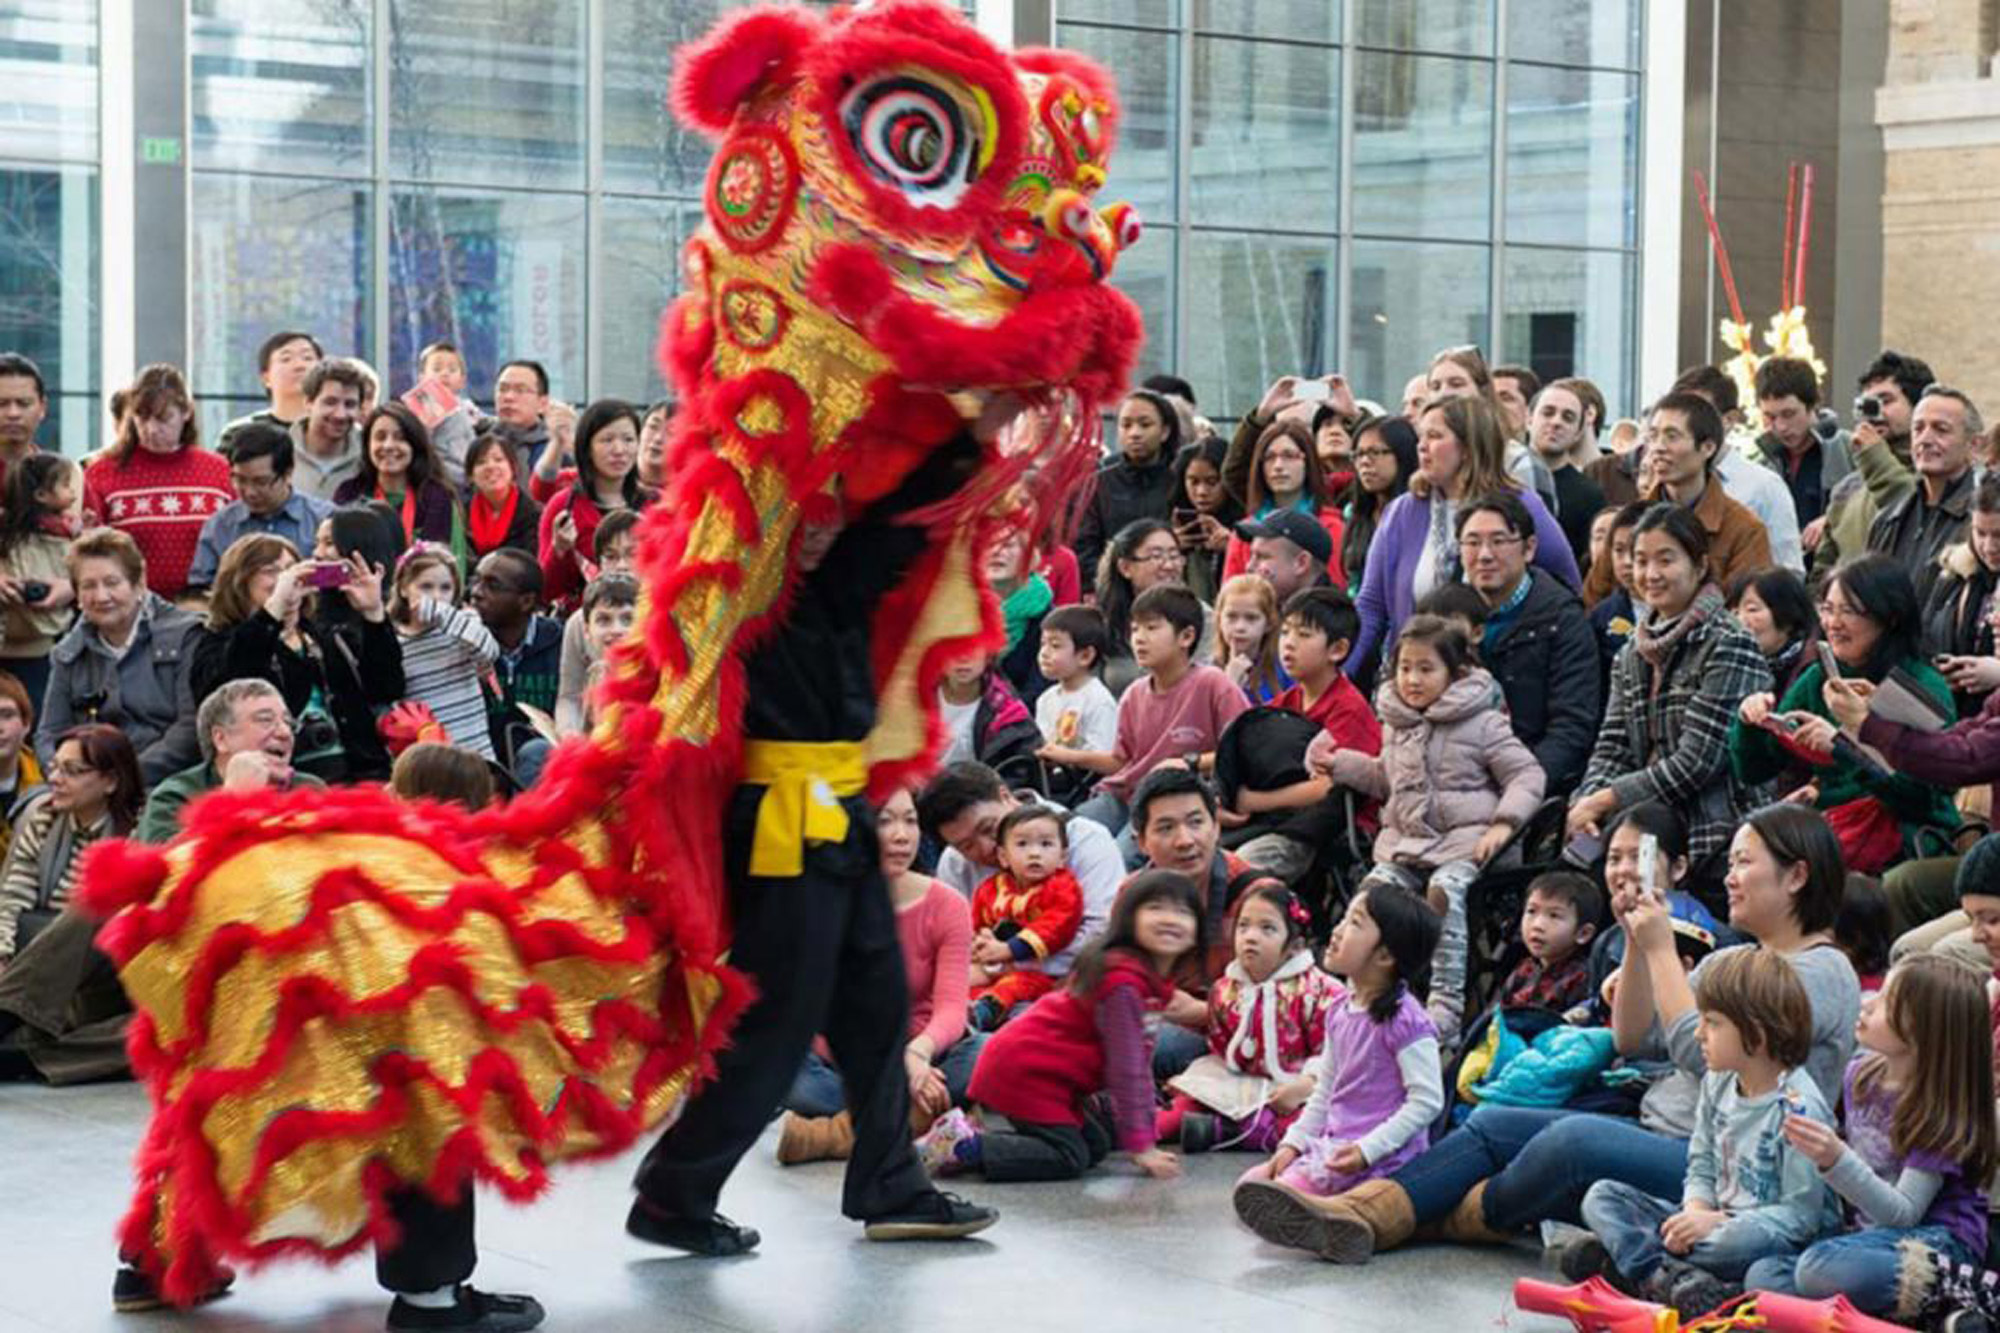 A photo of festivities at the Museum of Fine Arts Lunar New Year Celebration.